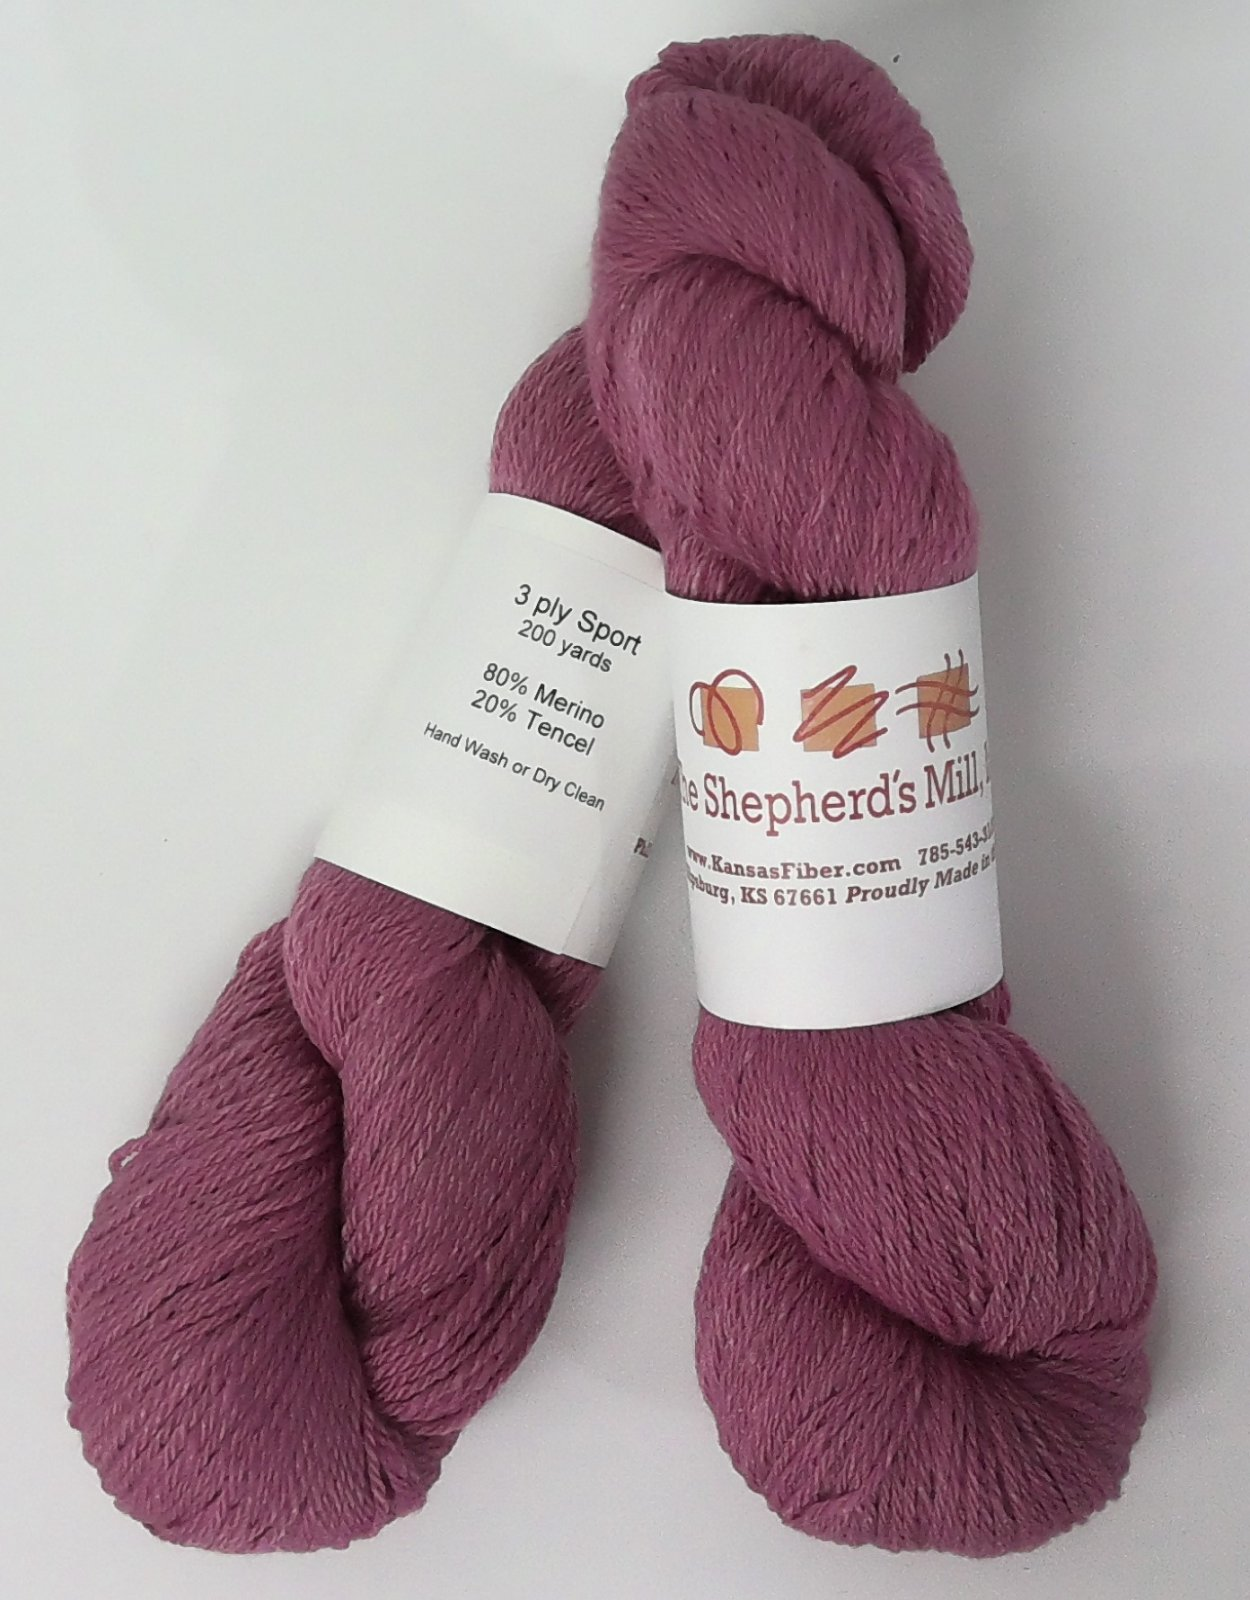 80M20T   3 Ply Sport   Assorted